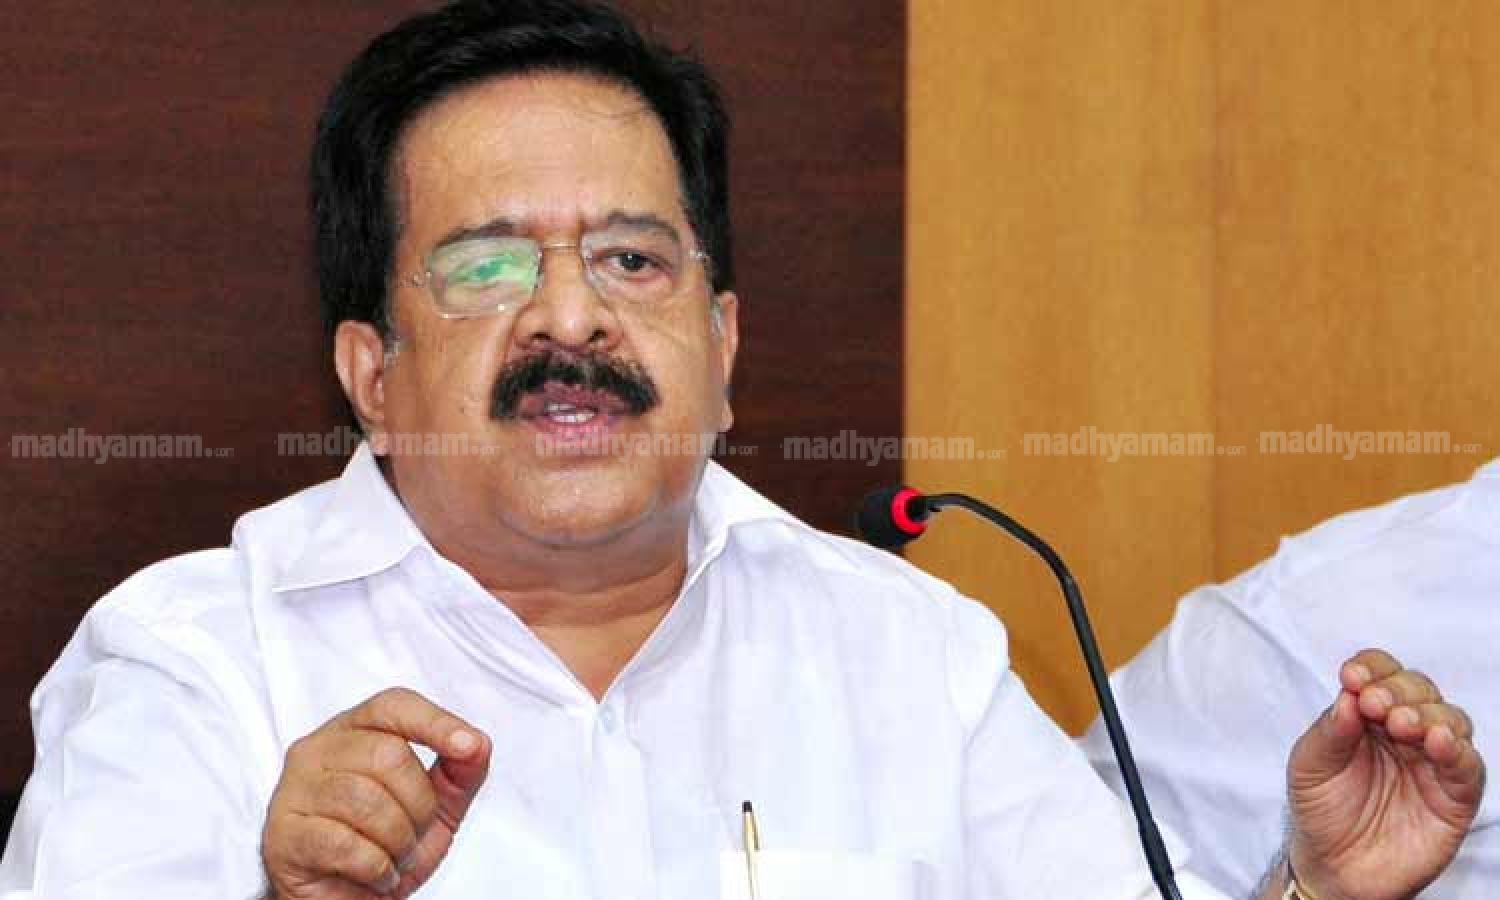 Its going to be 20 out of 20 in Kerala: Congress